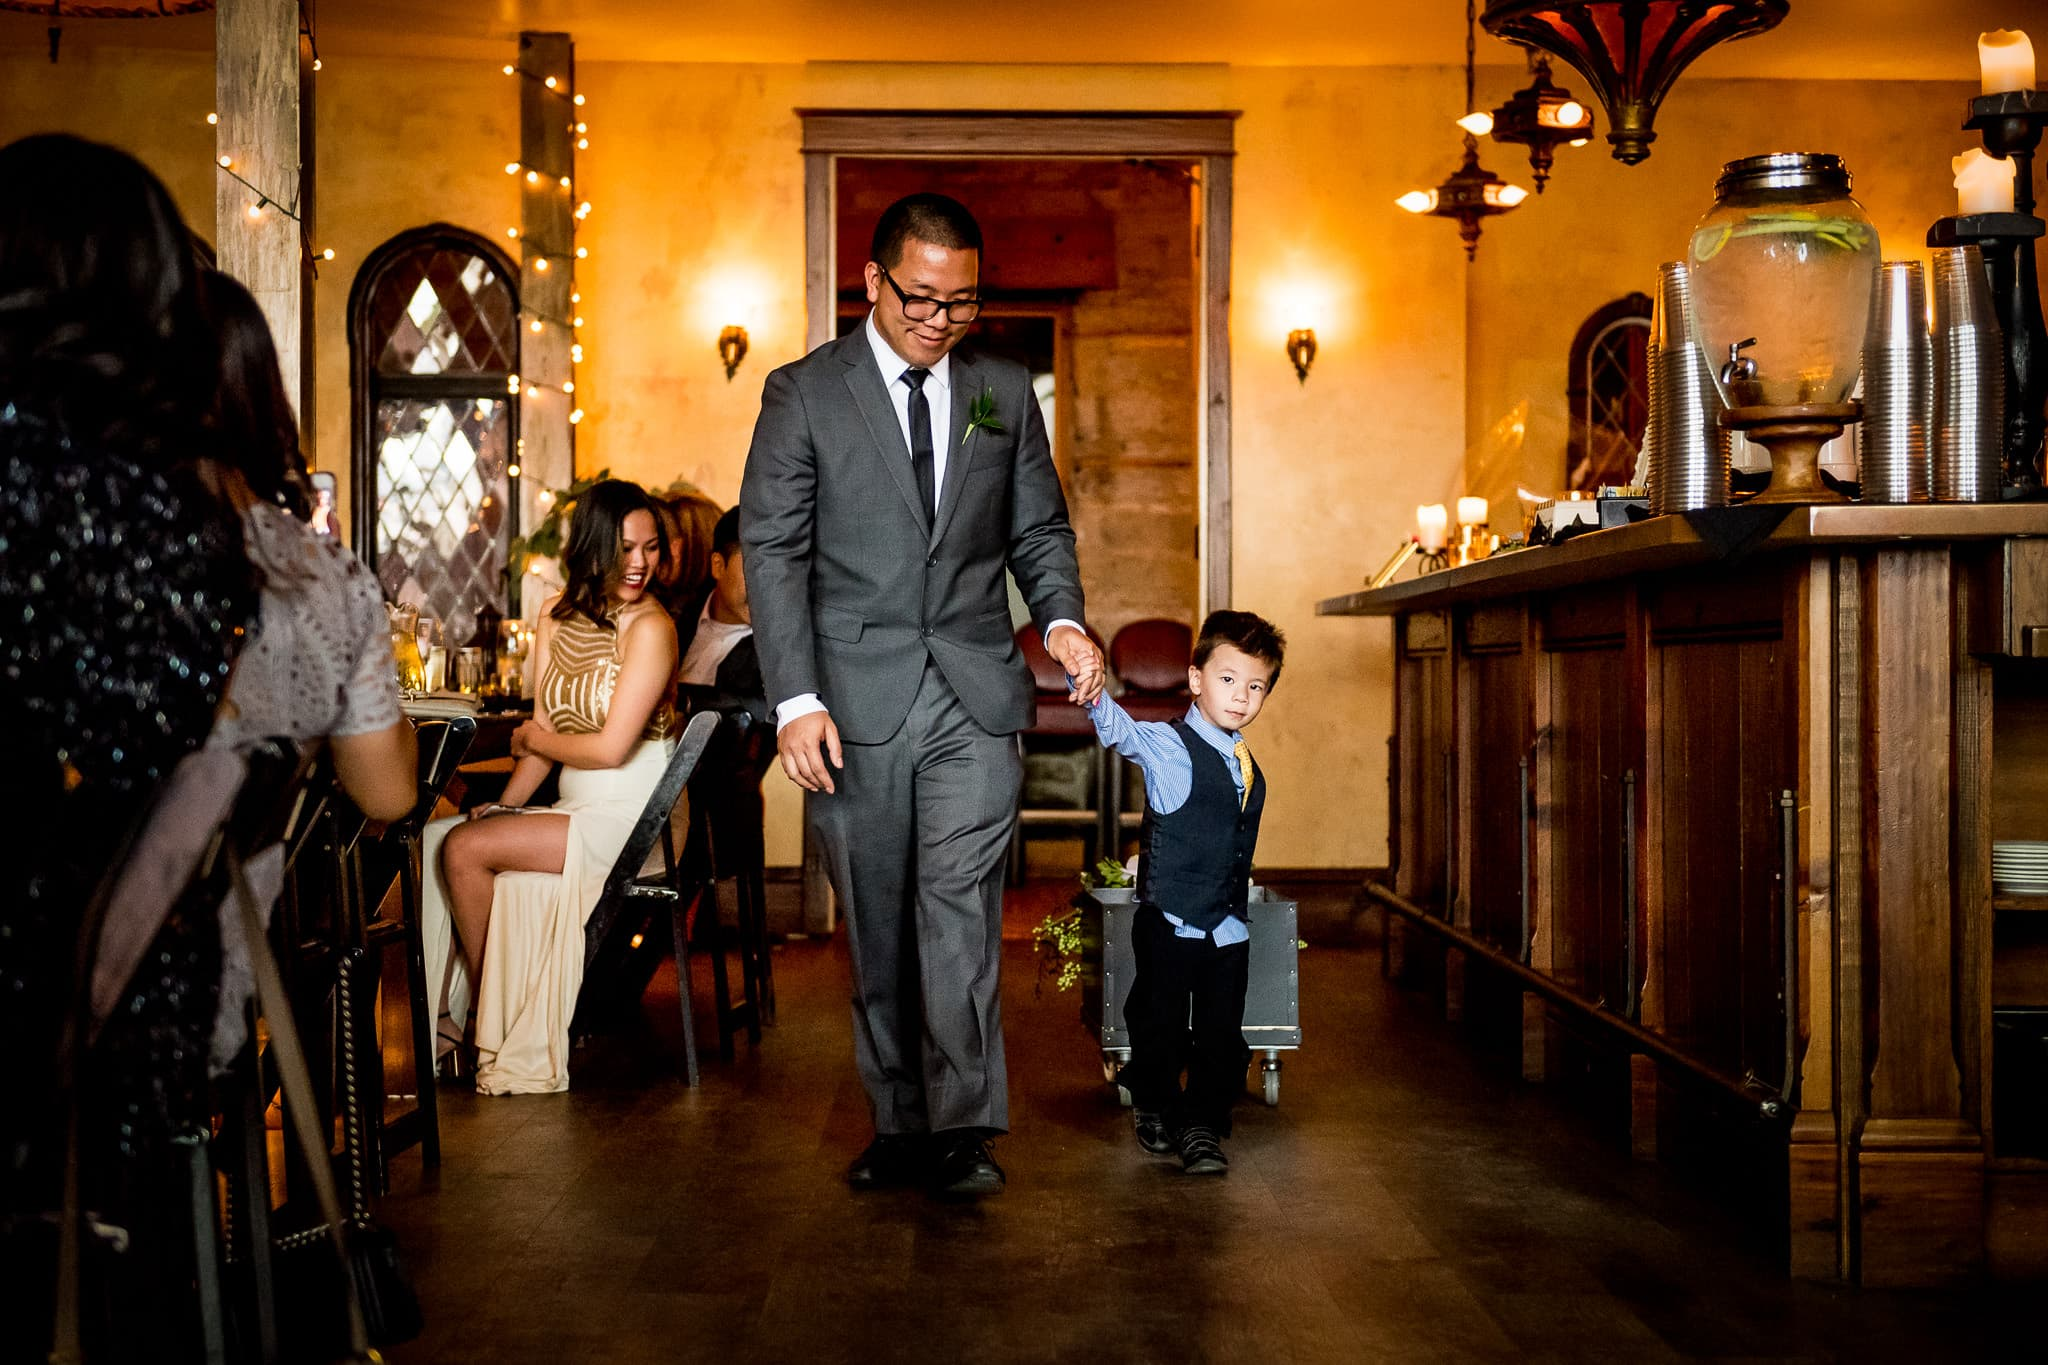 Aster Cafe wedding Photo of child and dog walking down the aisle 1